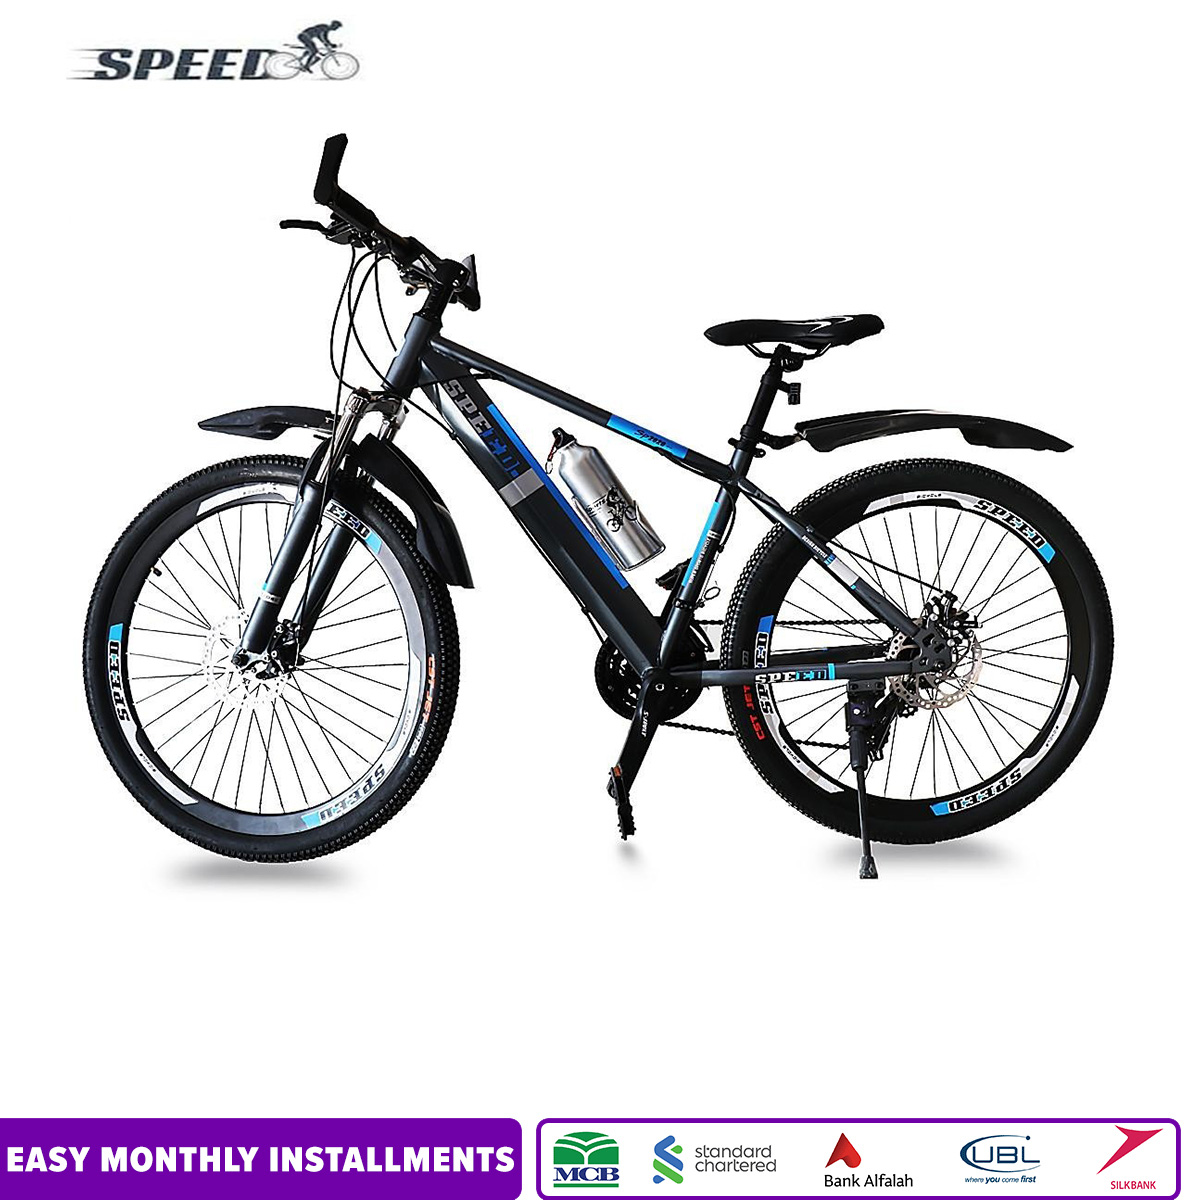 Bicyclone Presents New Bike-Bicycle Speed 26 Inches- 2 Years Warranty